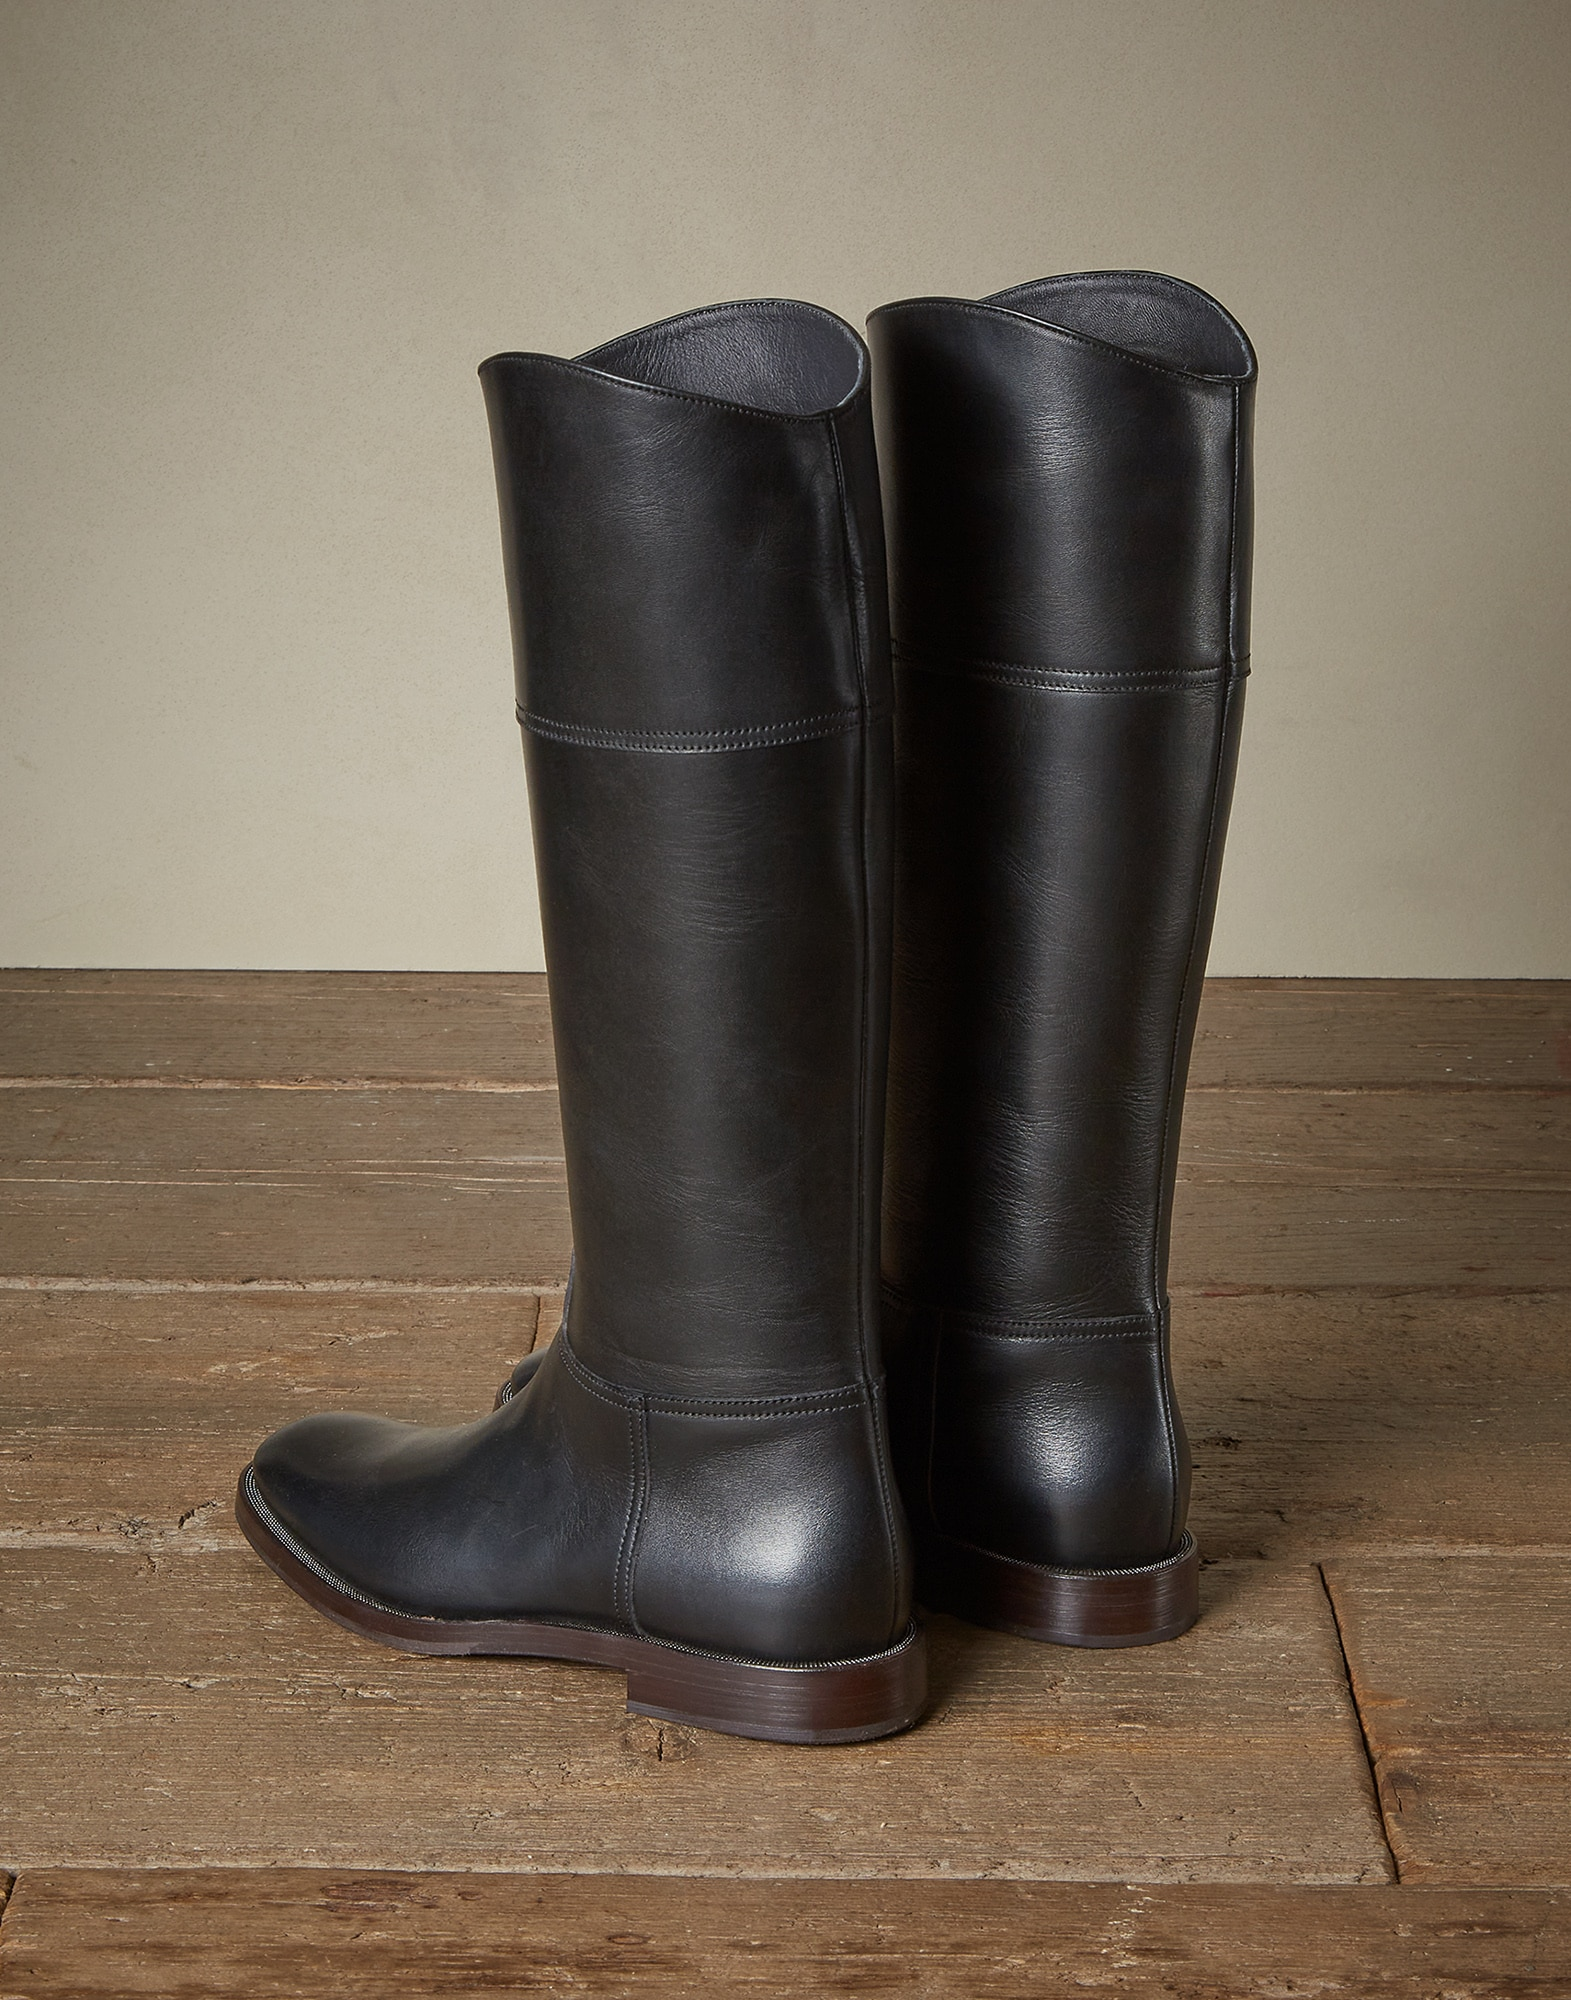 High-Boots Black Woman 1 - Brunello Cucinelli